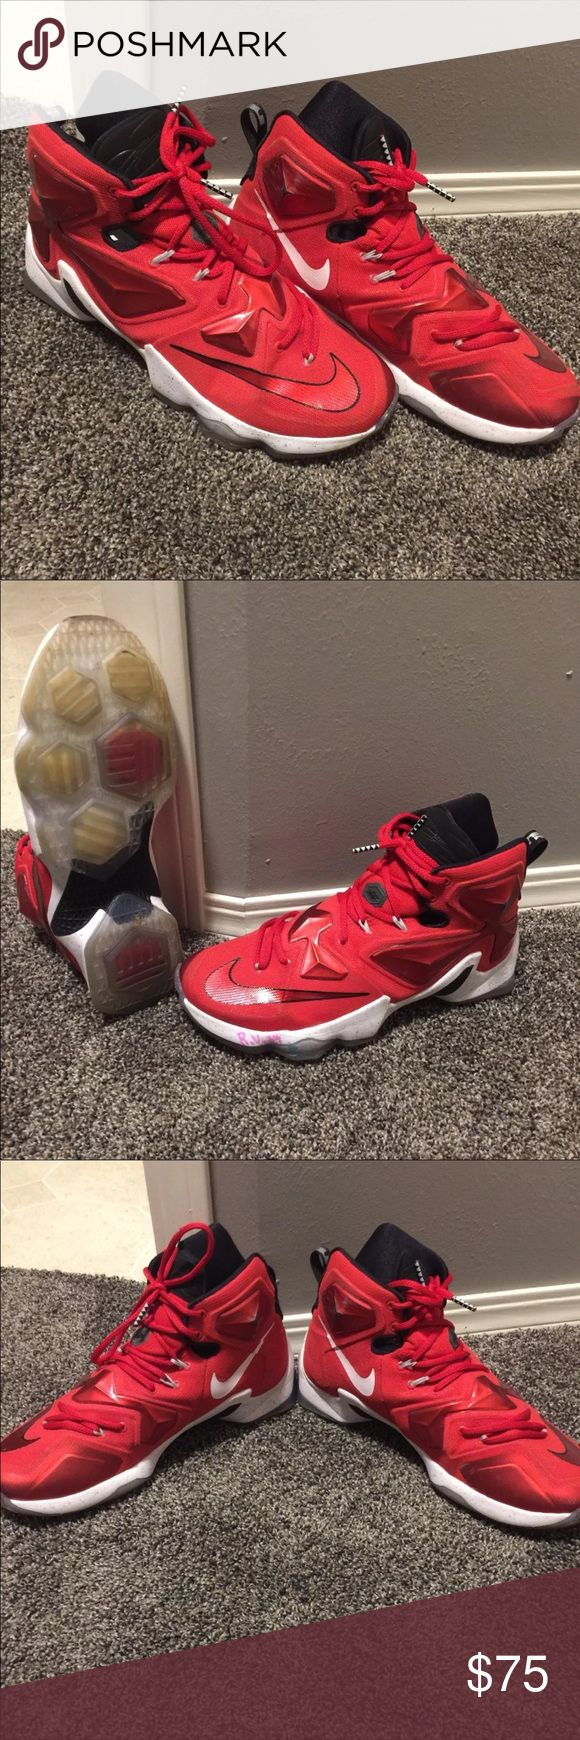 Lebron 13 Worn for basketball a few times 8.5/10 condition and little word on side (initials) Nike Shoes Athletic Shoes